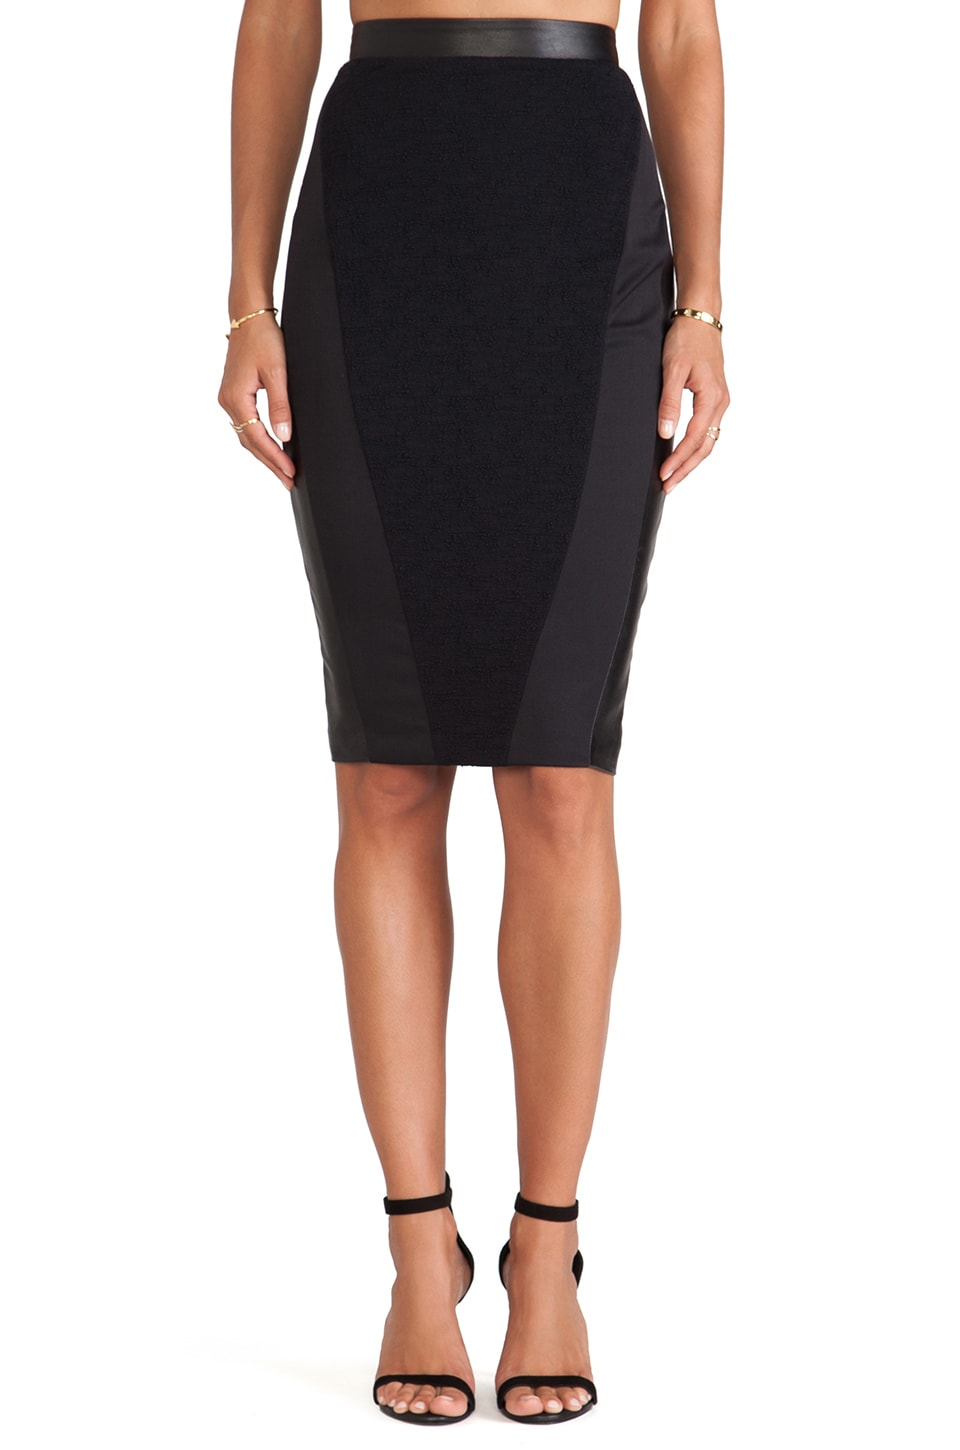 LaPina by David Helwani LaPina Cara Pencil Skirt in Black & Black